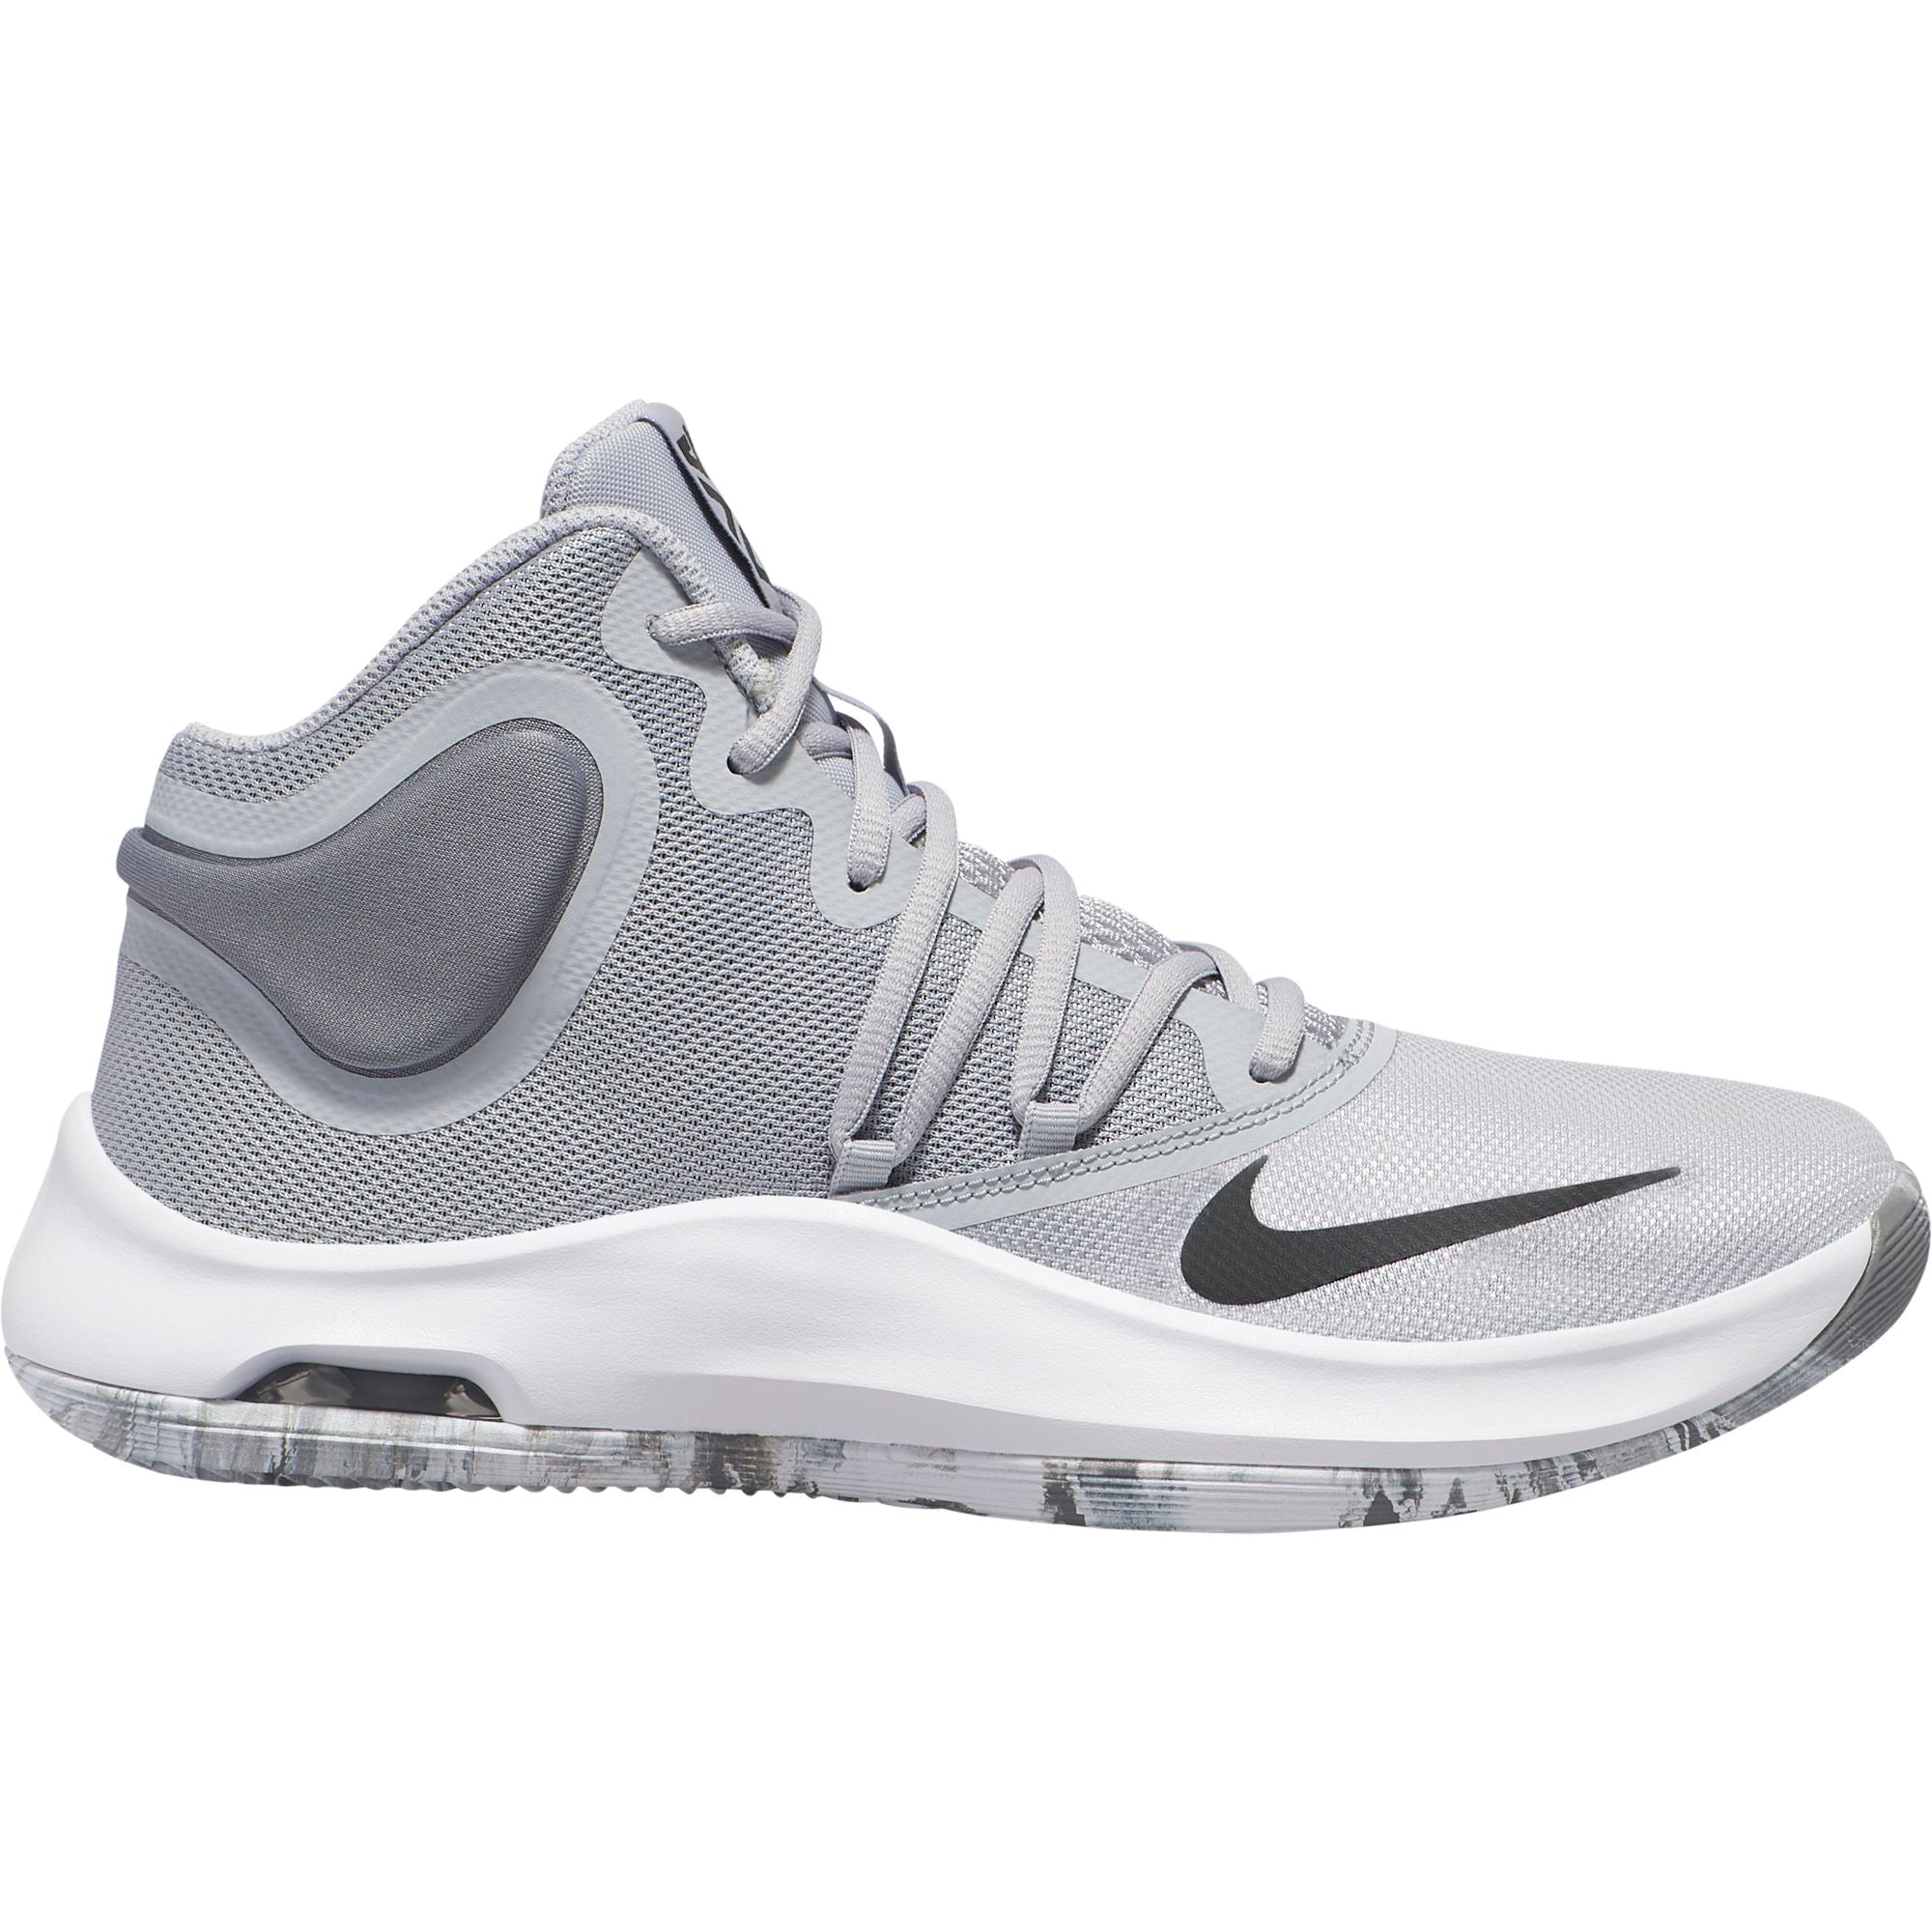 Nike Basketball Air Versitile IV Boot/Shoe - NK-AT1199-003